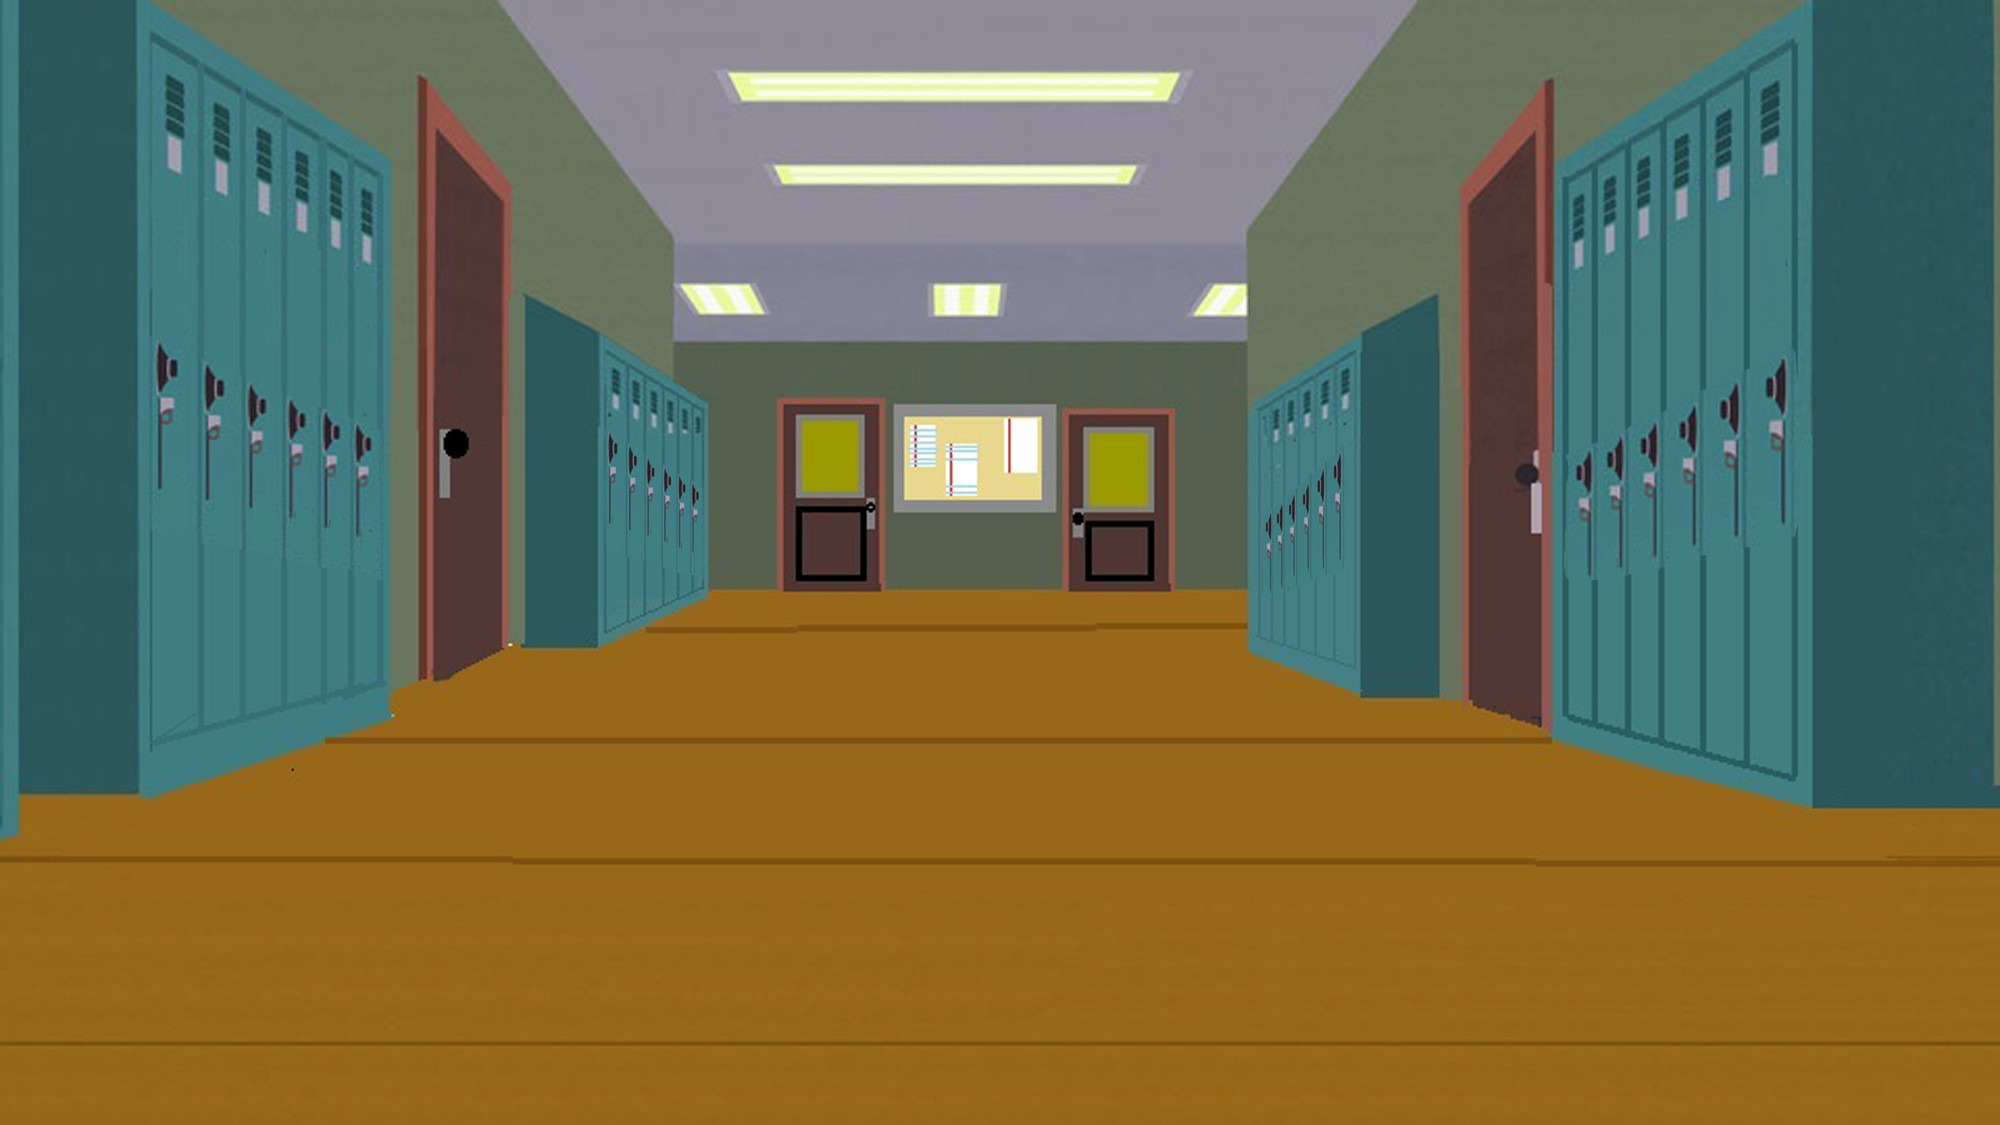 2000x1125 Full HD-Elementary School | Good Elementary School Pictures